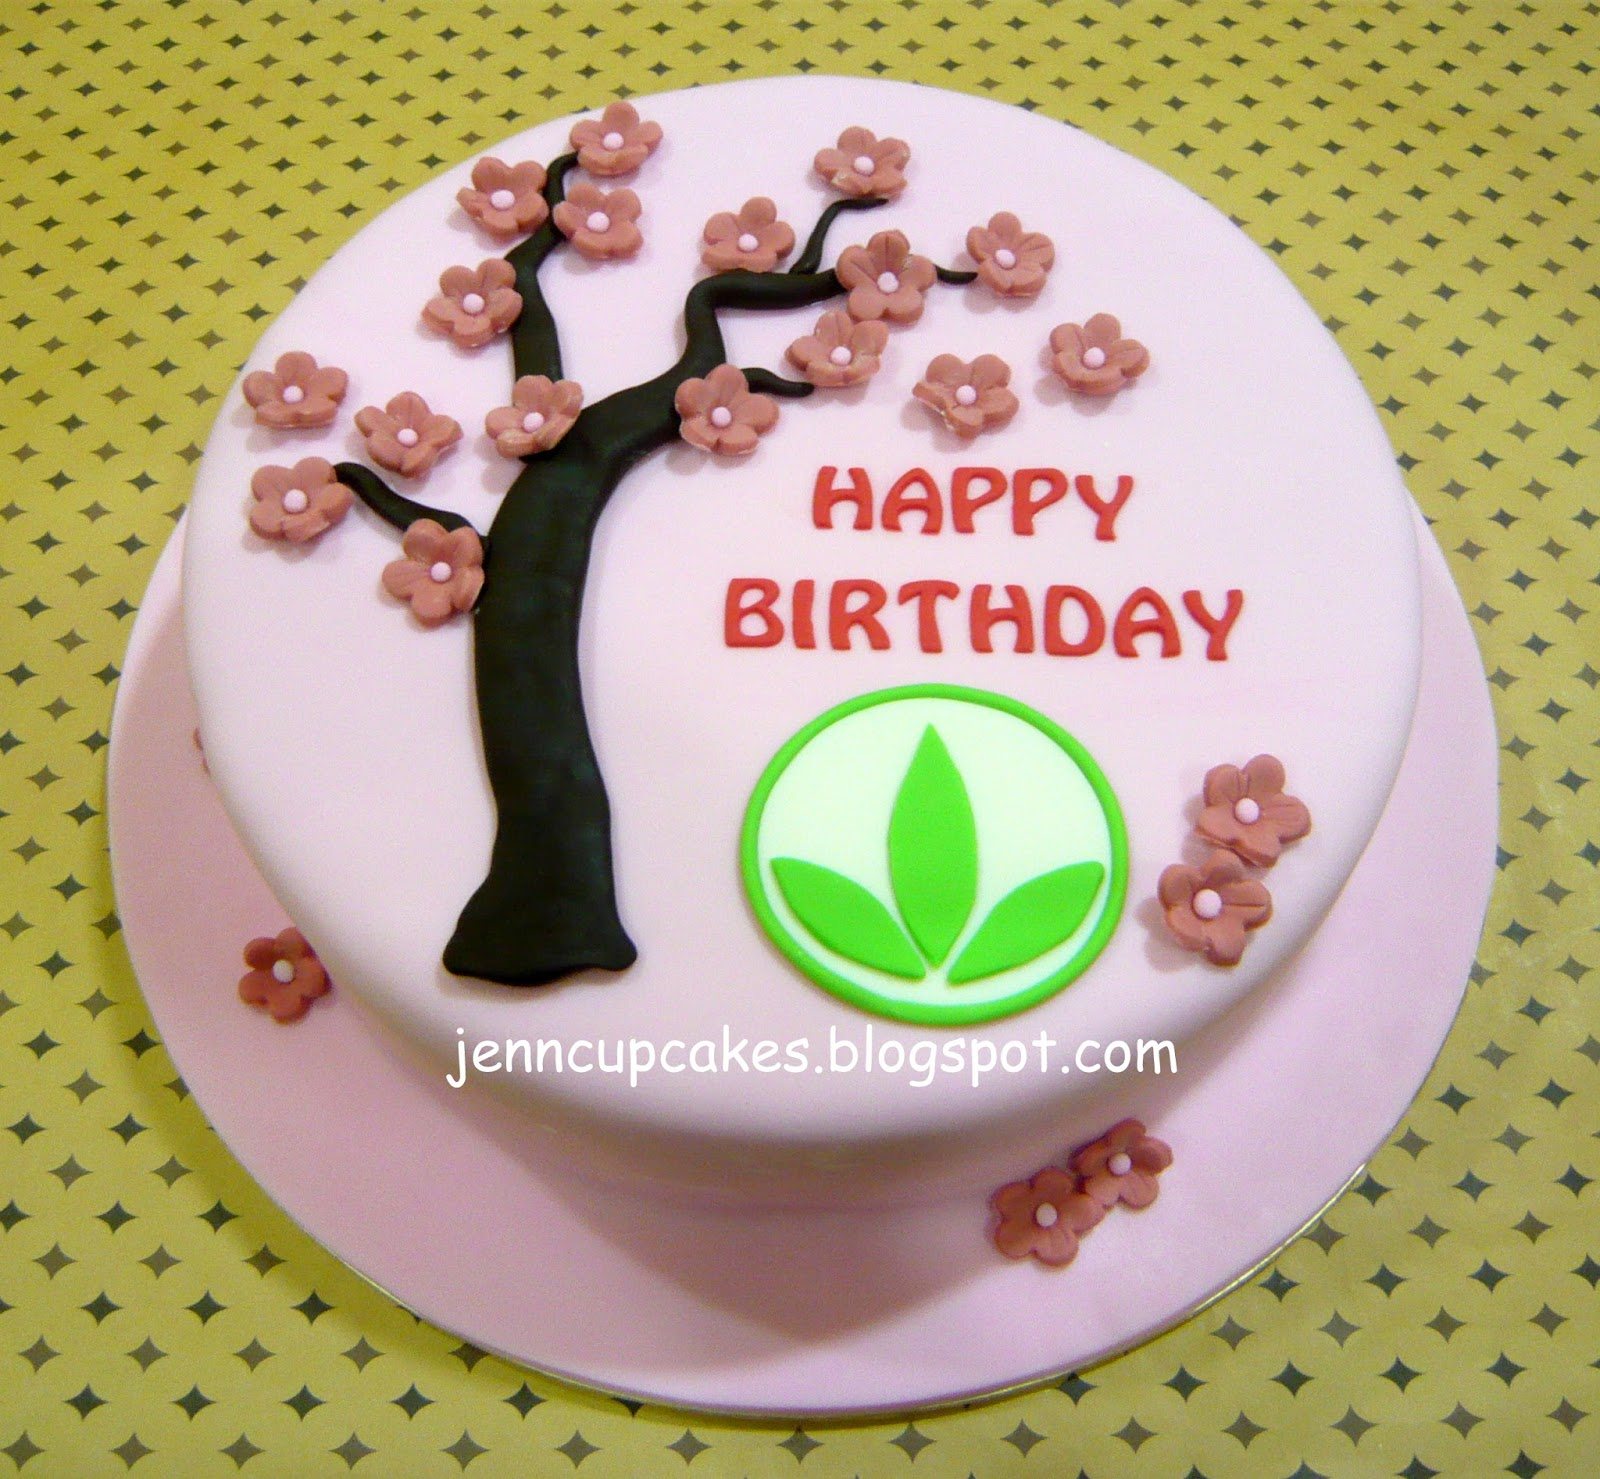 Tremendous Herbalife Cake News And Health Personalised Birthday Cards Sponlily Jamesorg